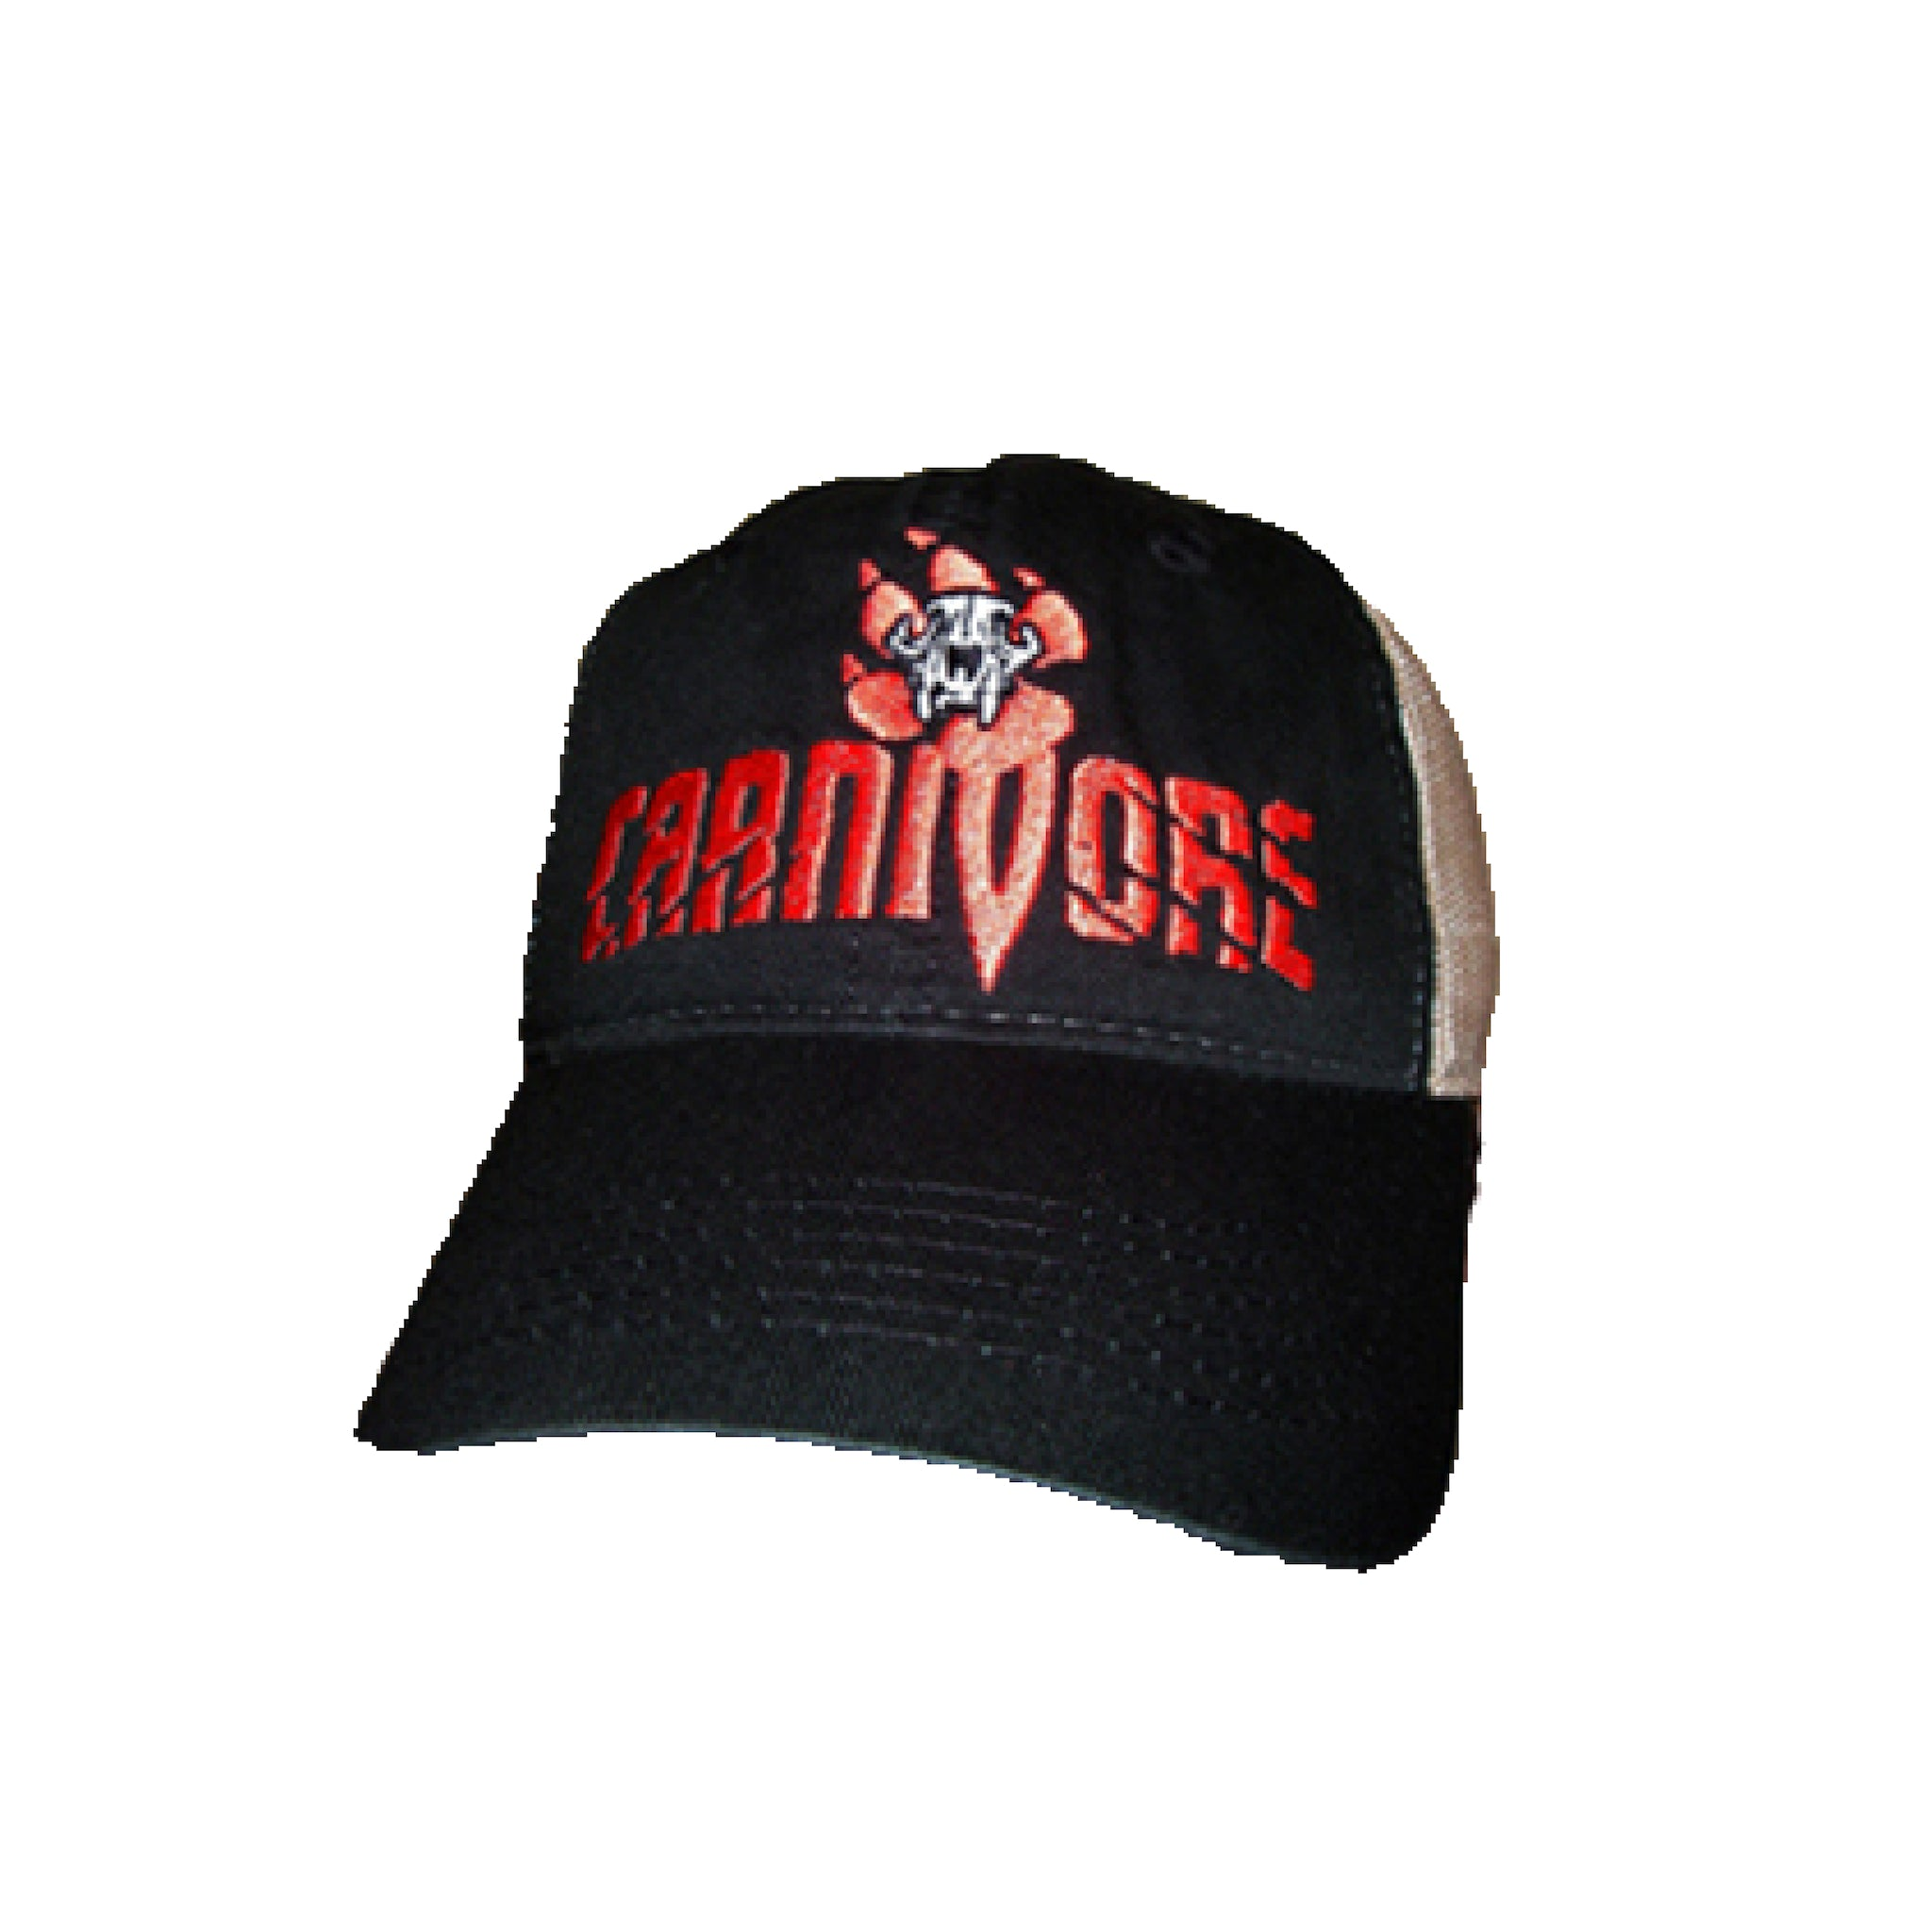 Carnivore Black and Tan Mesh Cap